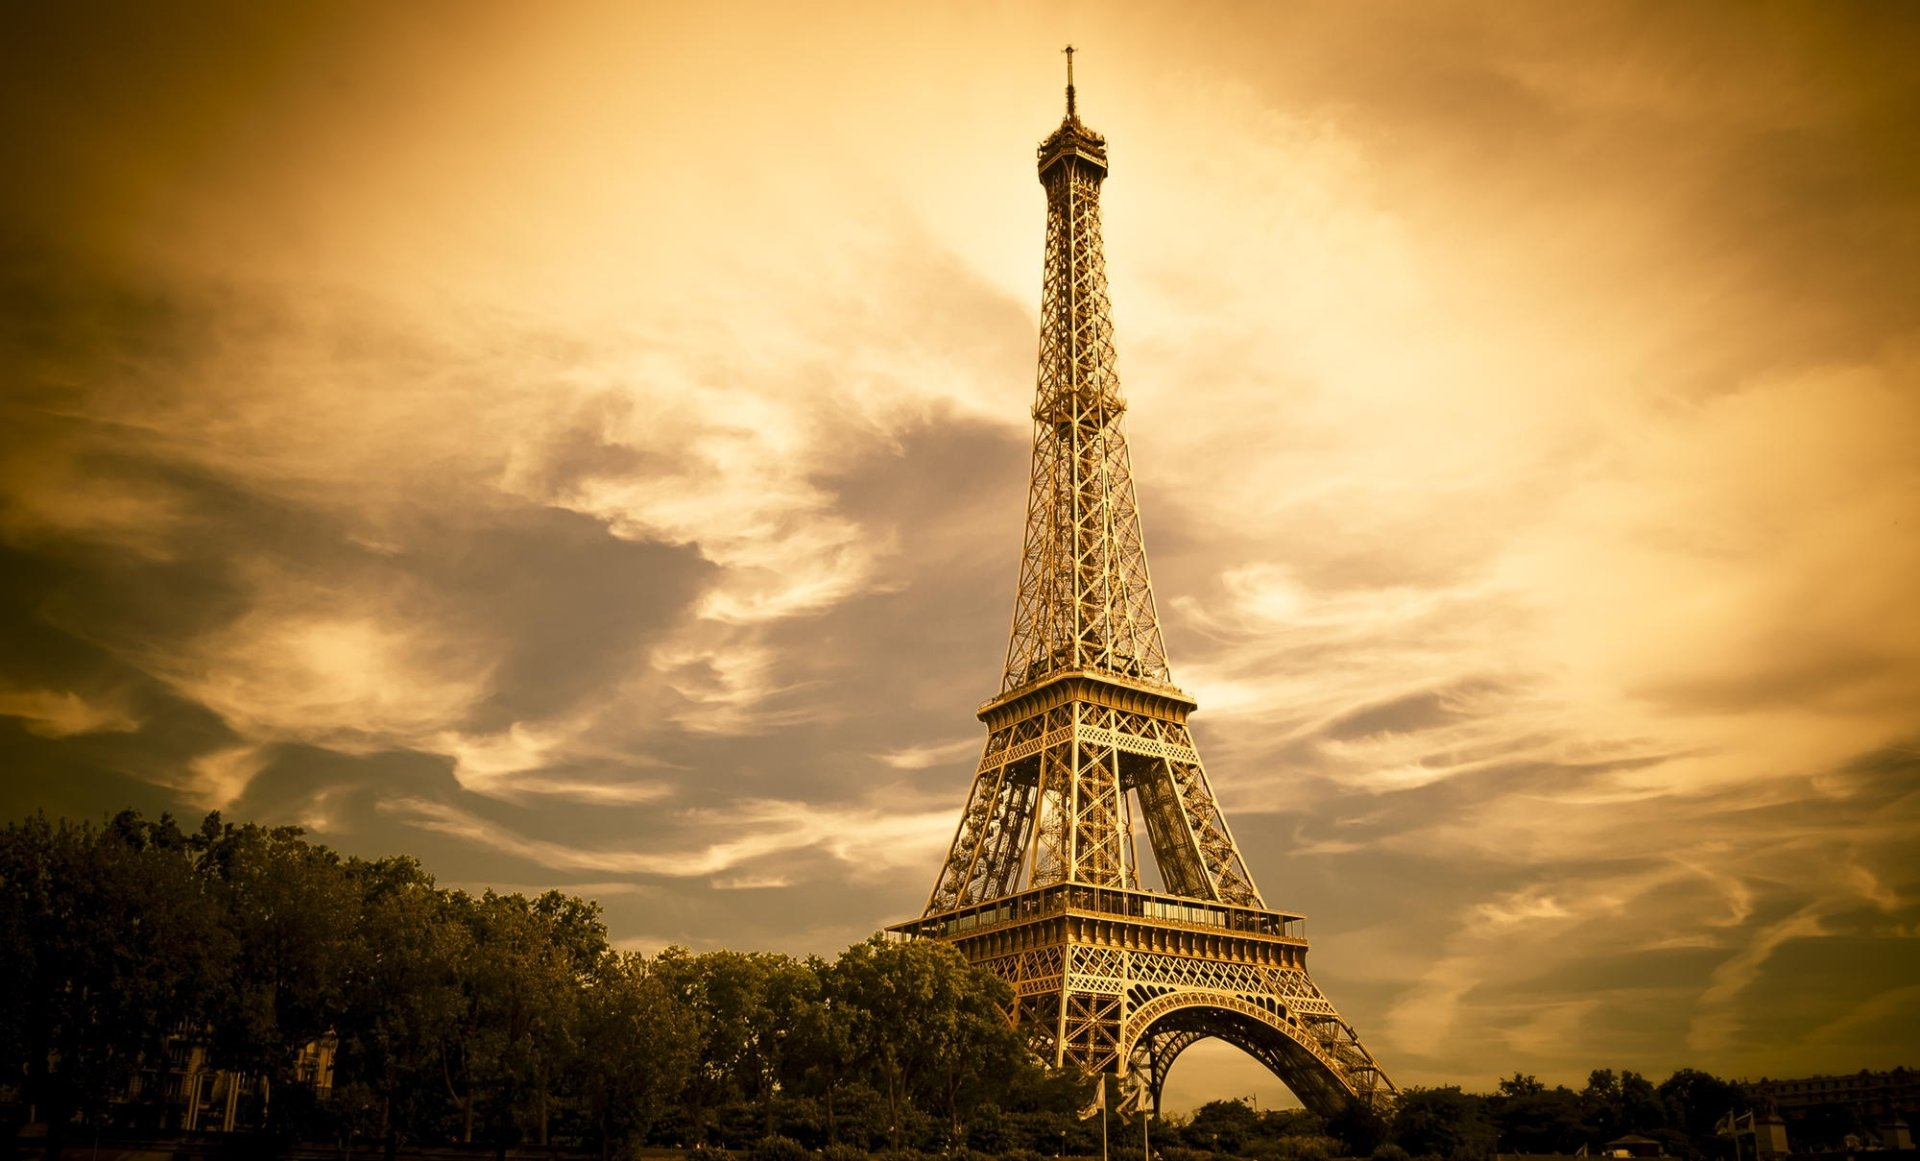 Eiffel tower hd wallpaper background image 2000x1209 - Paris eiffel tower desktop wallpaper ...